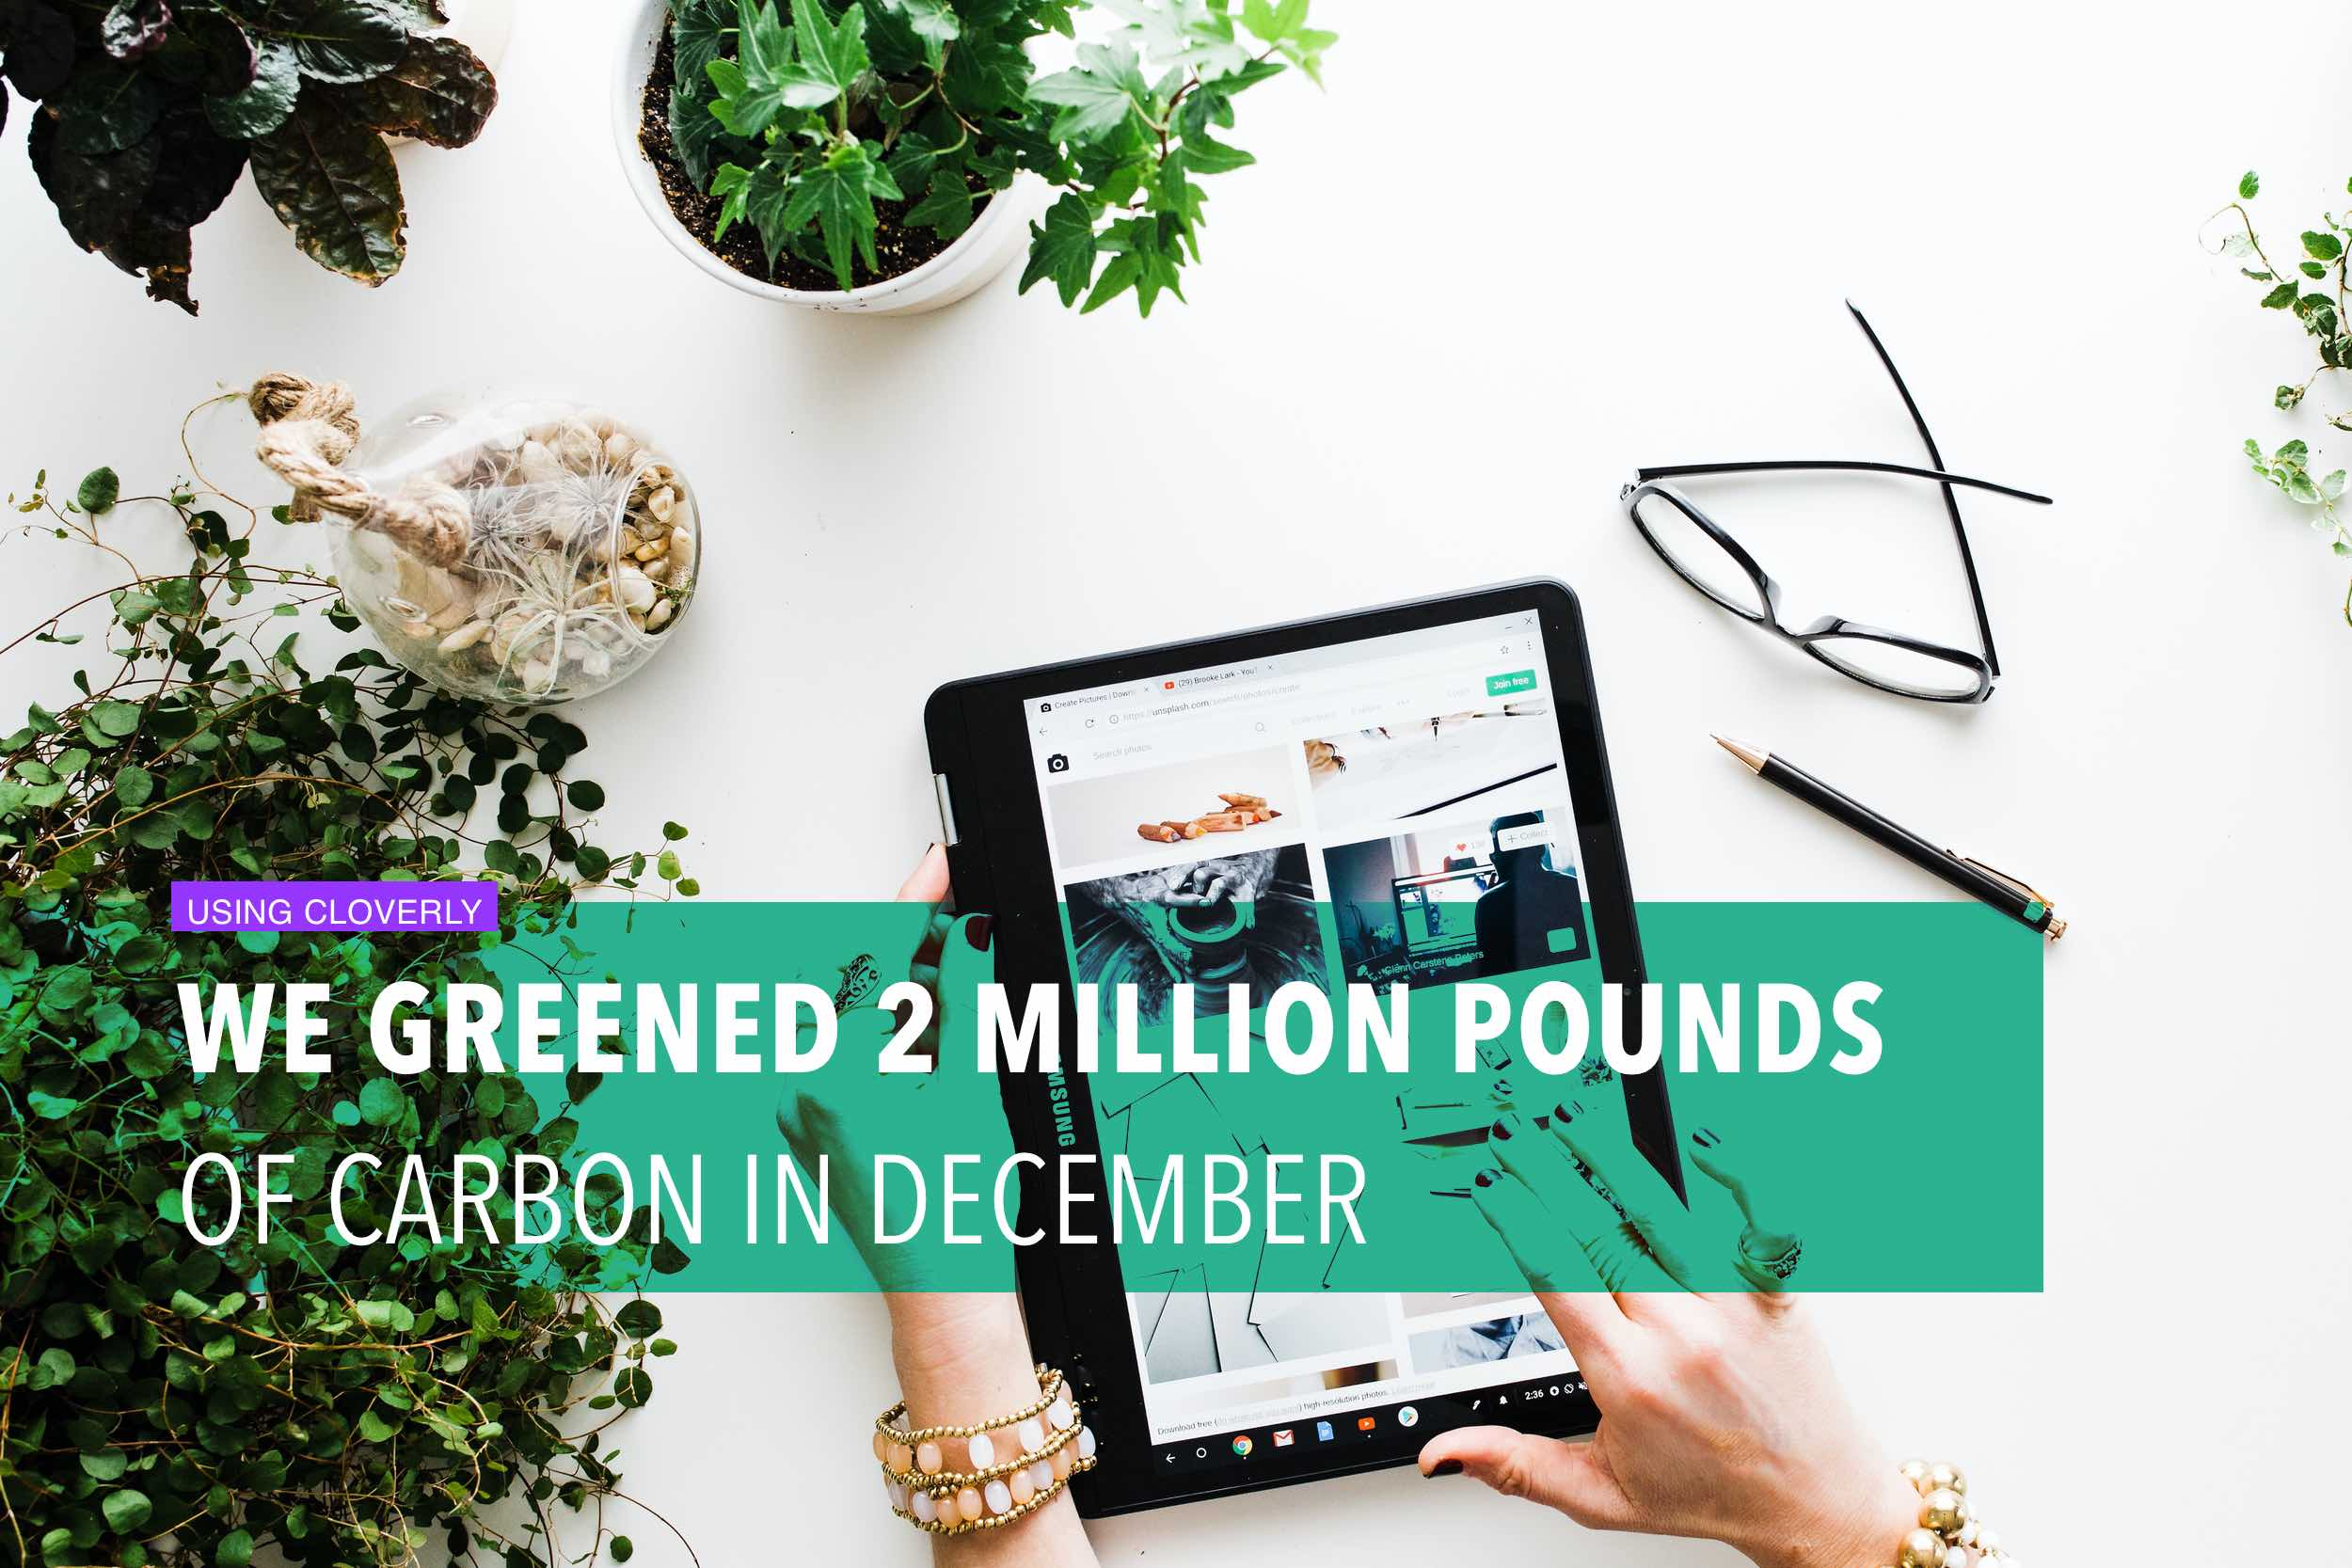 We greened 2 million pounds of carbon in December